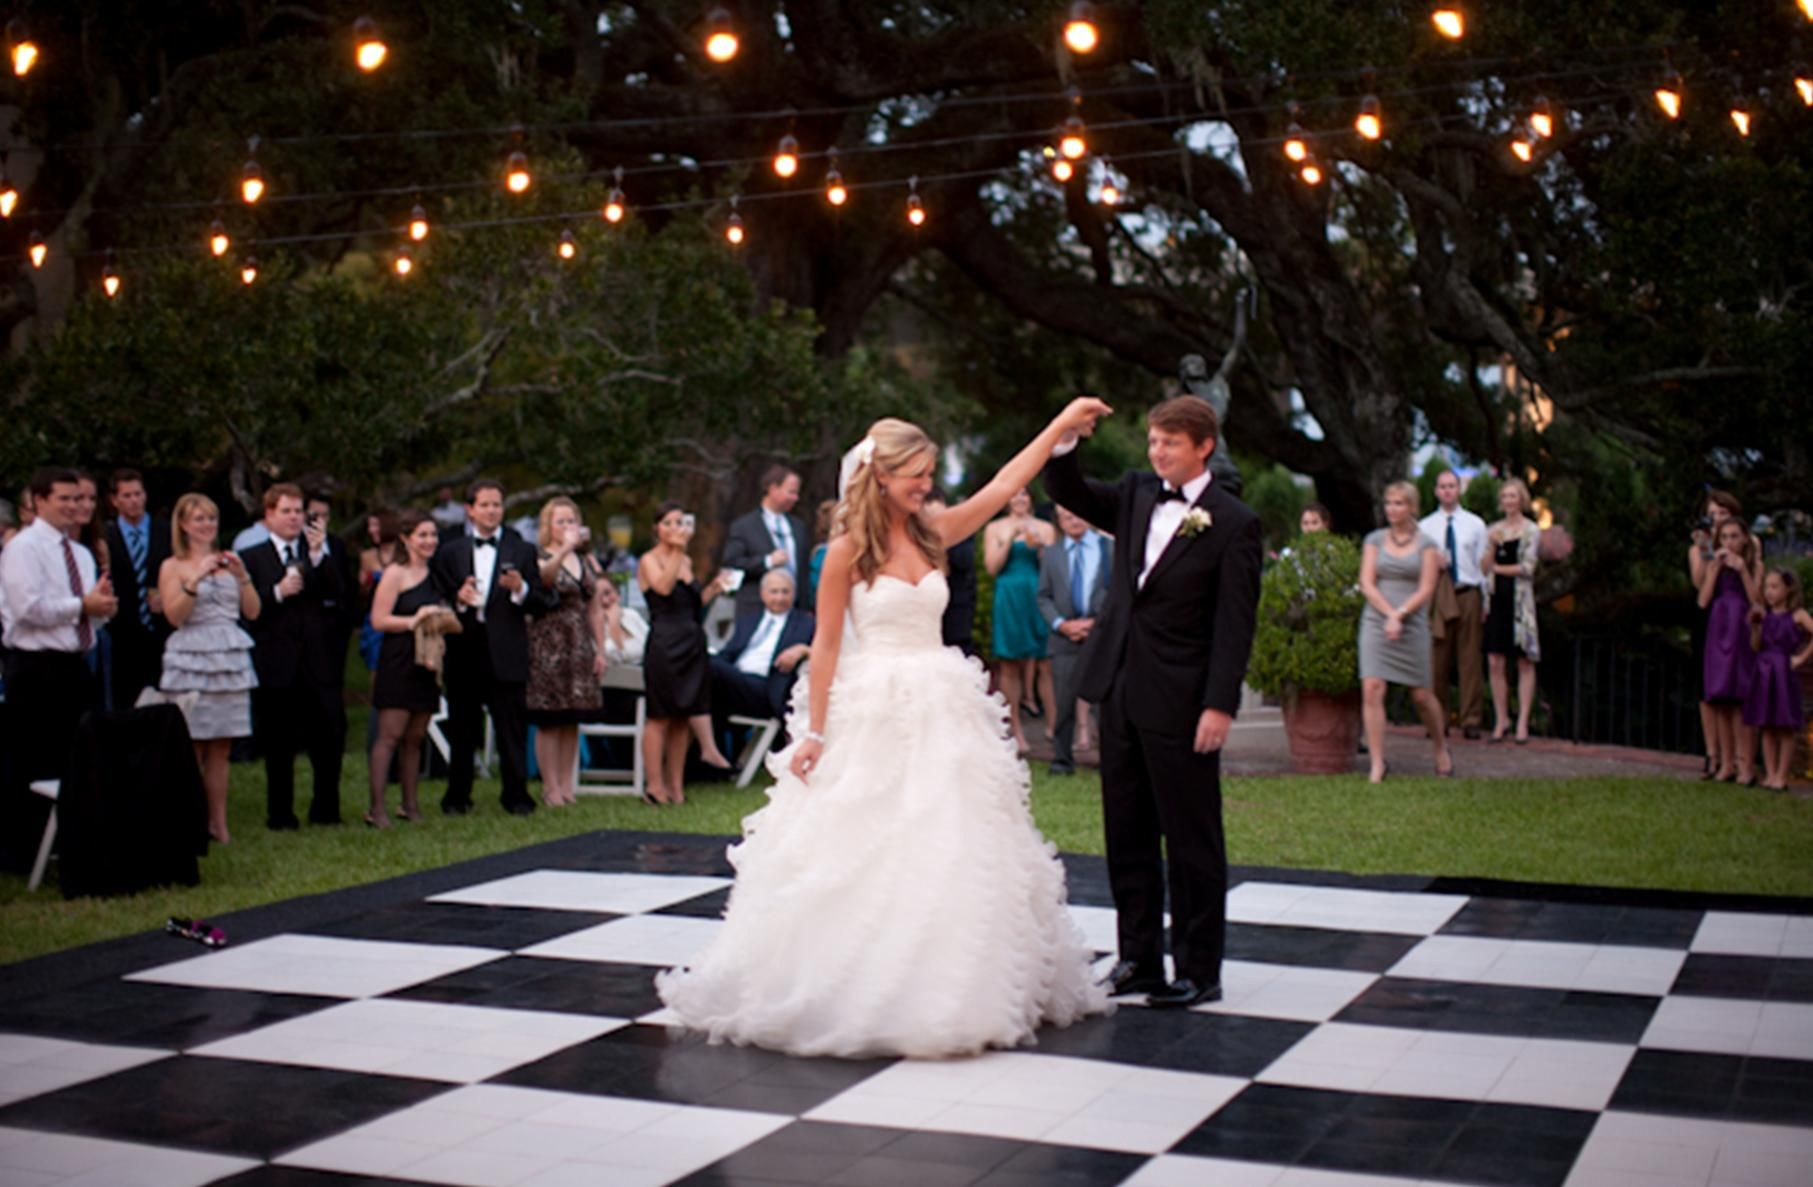 Big Checkered Dance Floor Outdoors With Lanterns